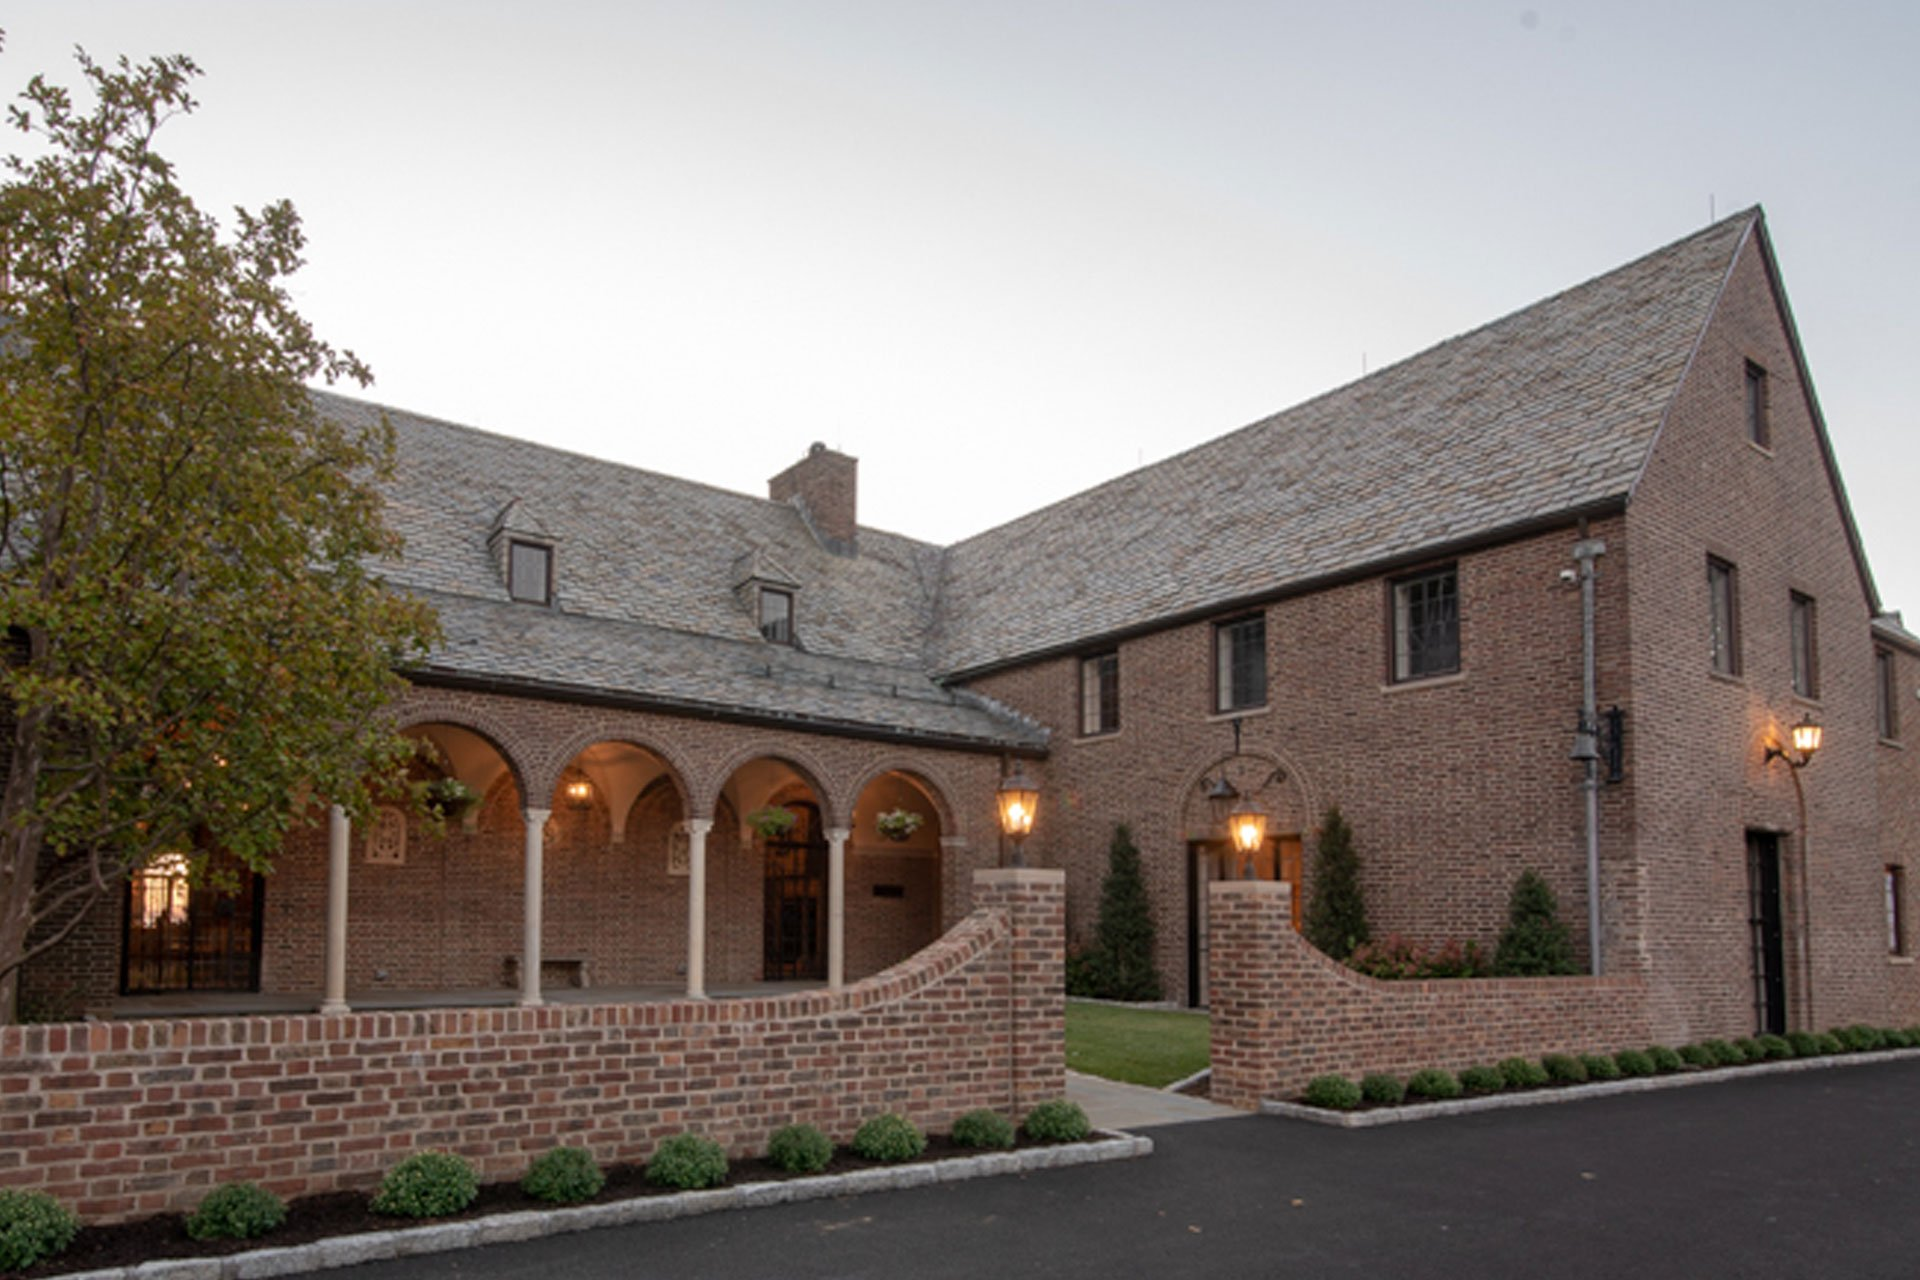 murphy-brothers-contracting-commercial-ardsley-country-club-exterior-entrance